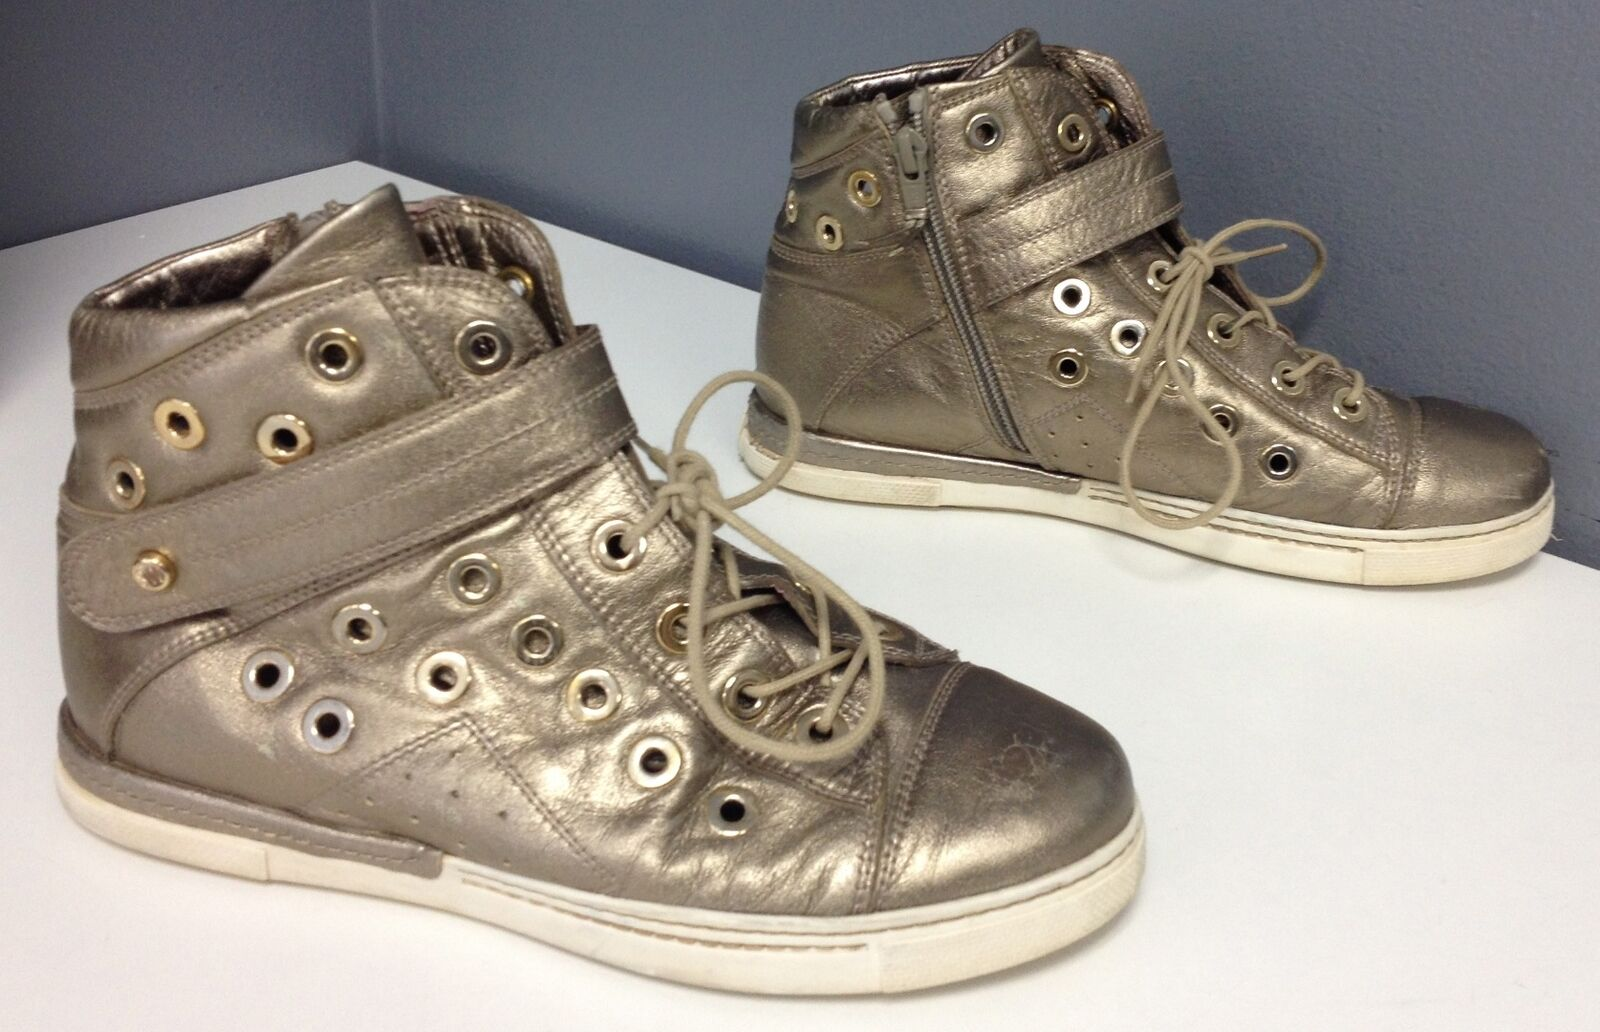 STUART WEITZMAN gold Metallic Leather Lace Up HIgh Top Sneakers Sz 7.5 B4241